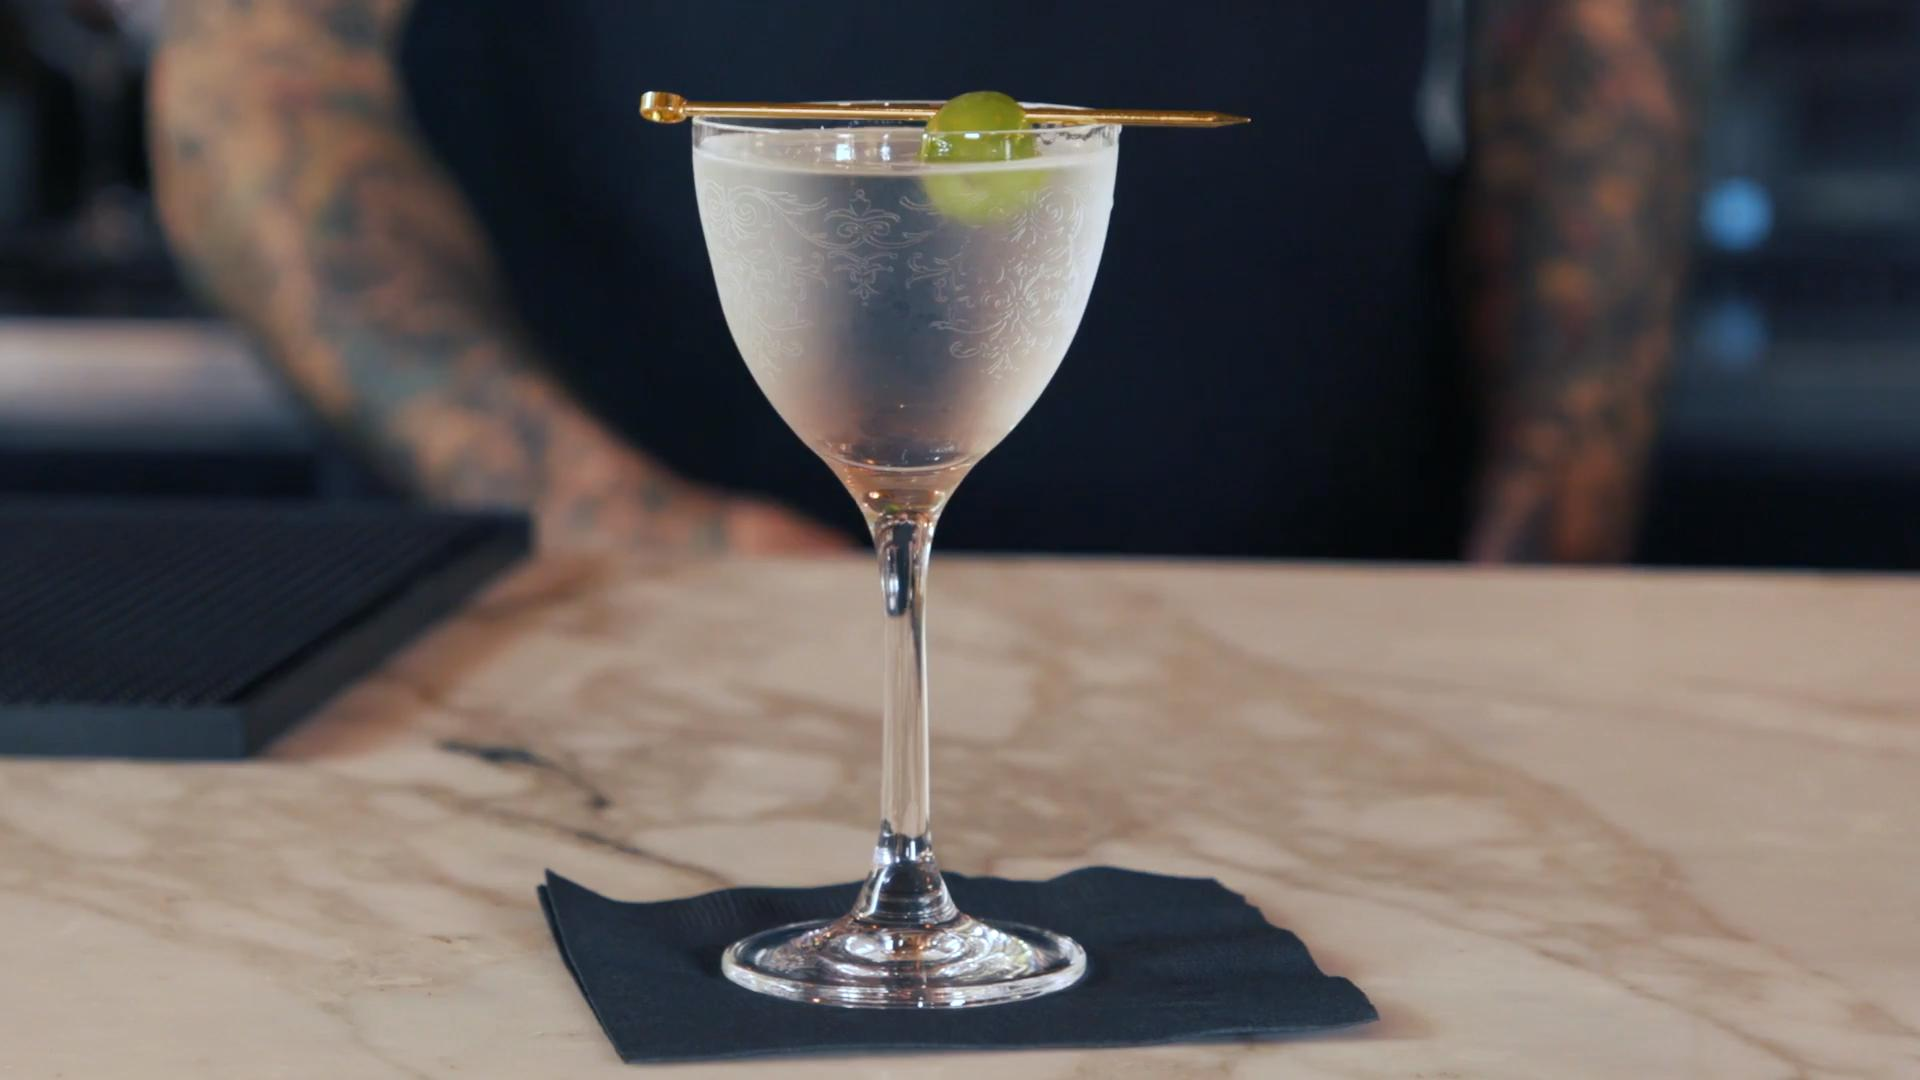 The Best Olives for Martinis